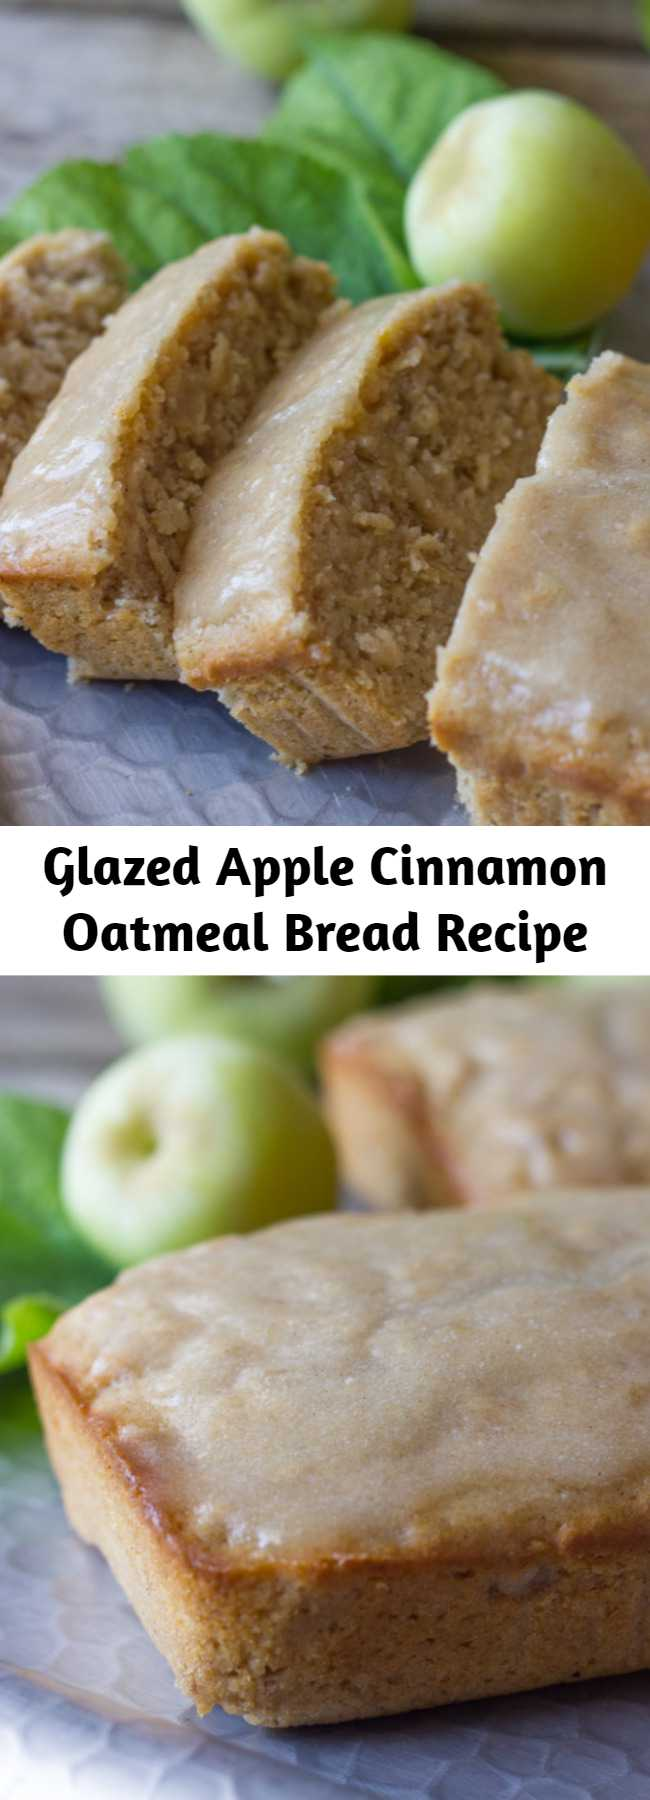 Glazed Apple Cinnamon Oatmeal Bread Recipe - Apple cinnamon oatmeal bread is slightly sweet, has nice chunks of apples, and the oats give it a great consistency. This makes a hearty, tasty breakfast.